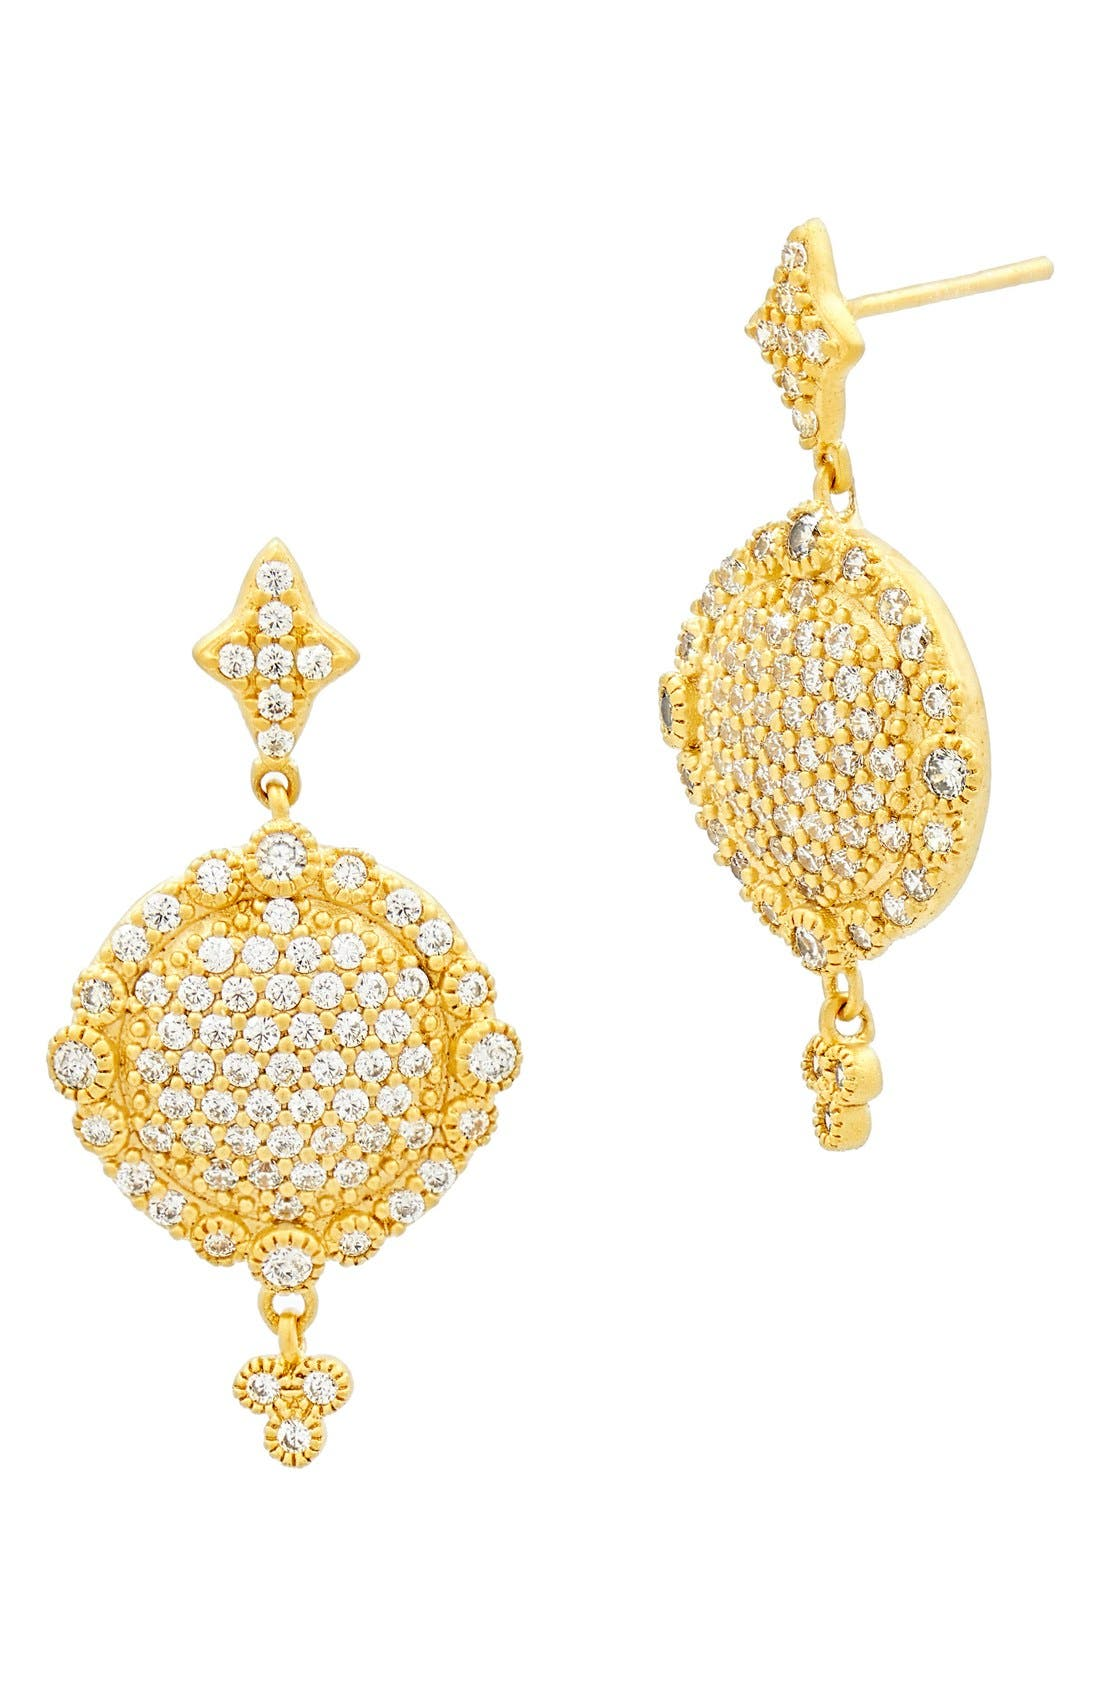 'Mercer' Pavé Drop Earrings,                             Main thumbnail 1, color,                             710